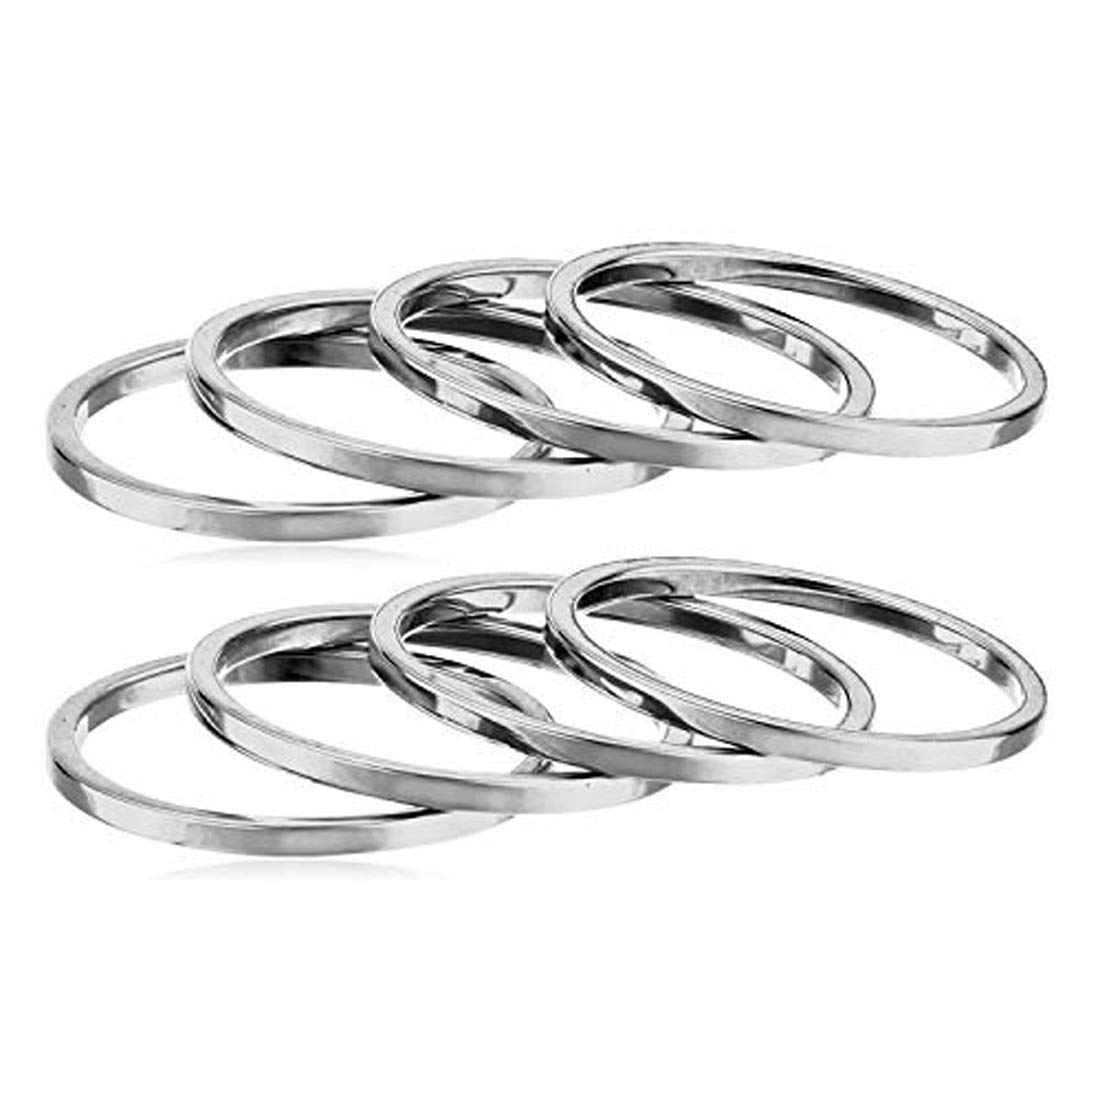 Set of 8 Stainless Steel Silver Phantom Jewelry Womens Plain Band Knuckle Stacking Midi Ring